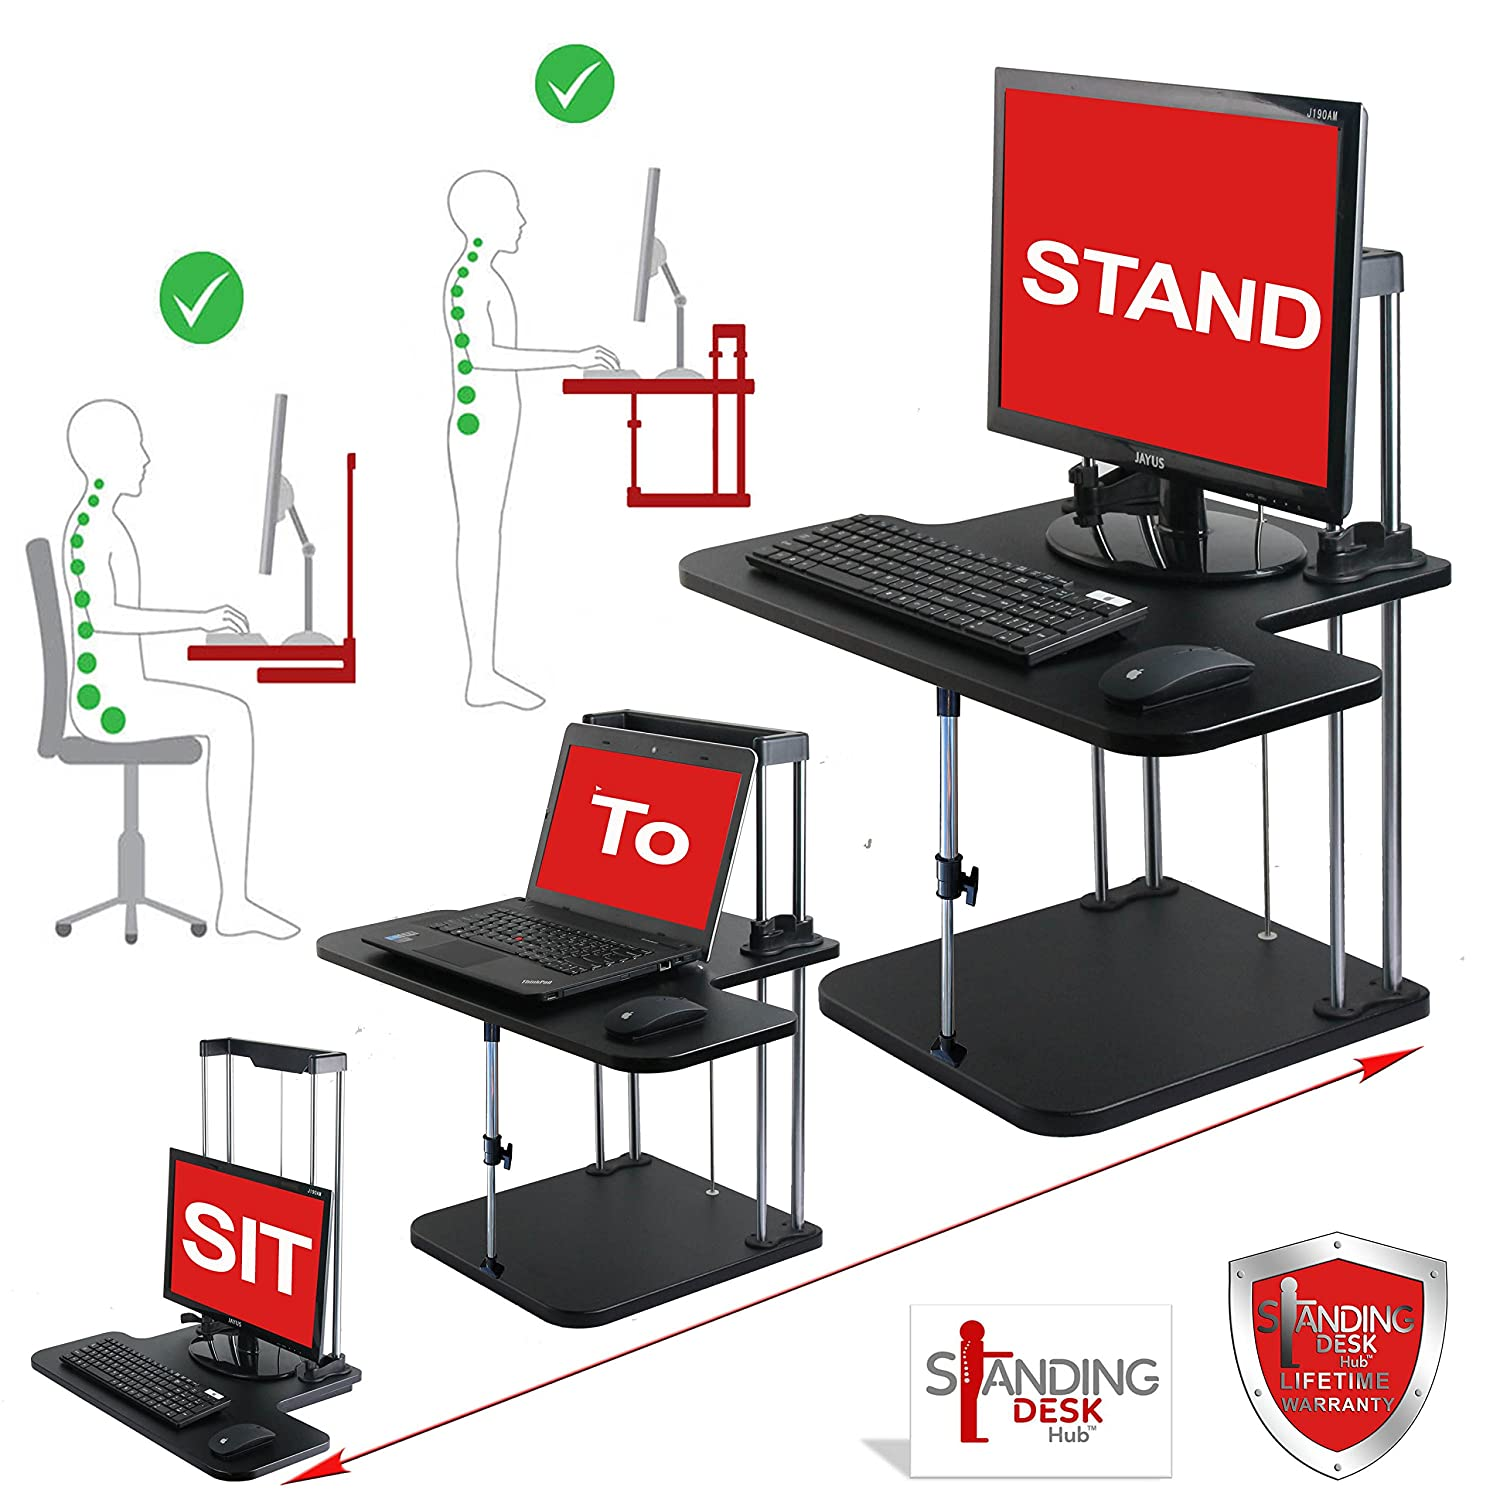 amazoncom standing desk hub sit stand desk converter adjustable to any height pro uplift computer for home and office use plus limited